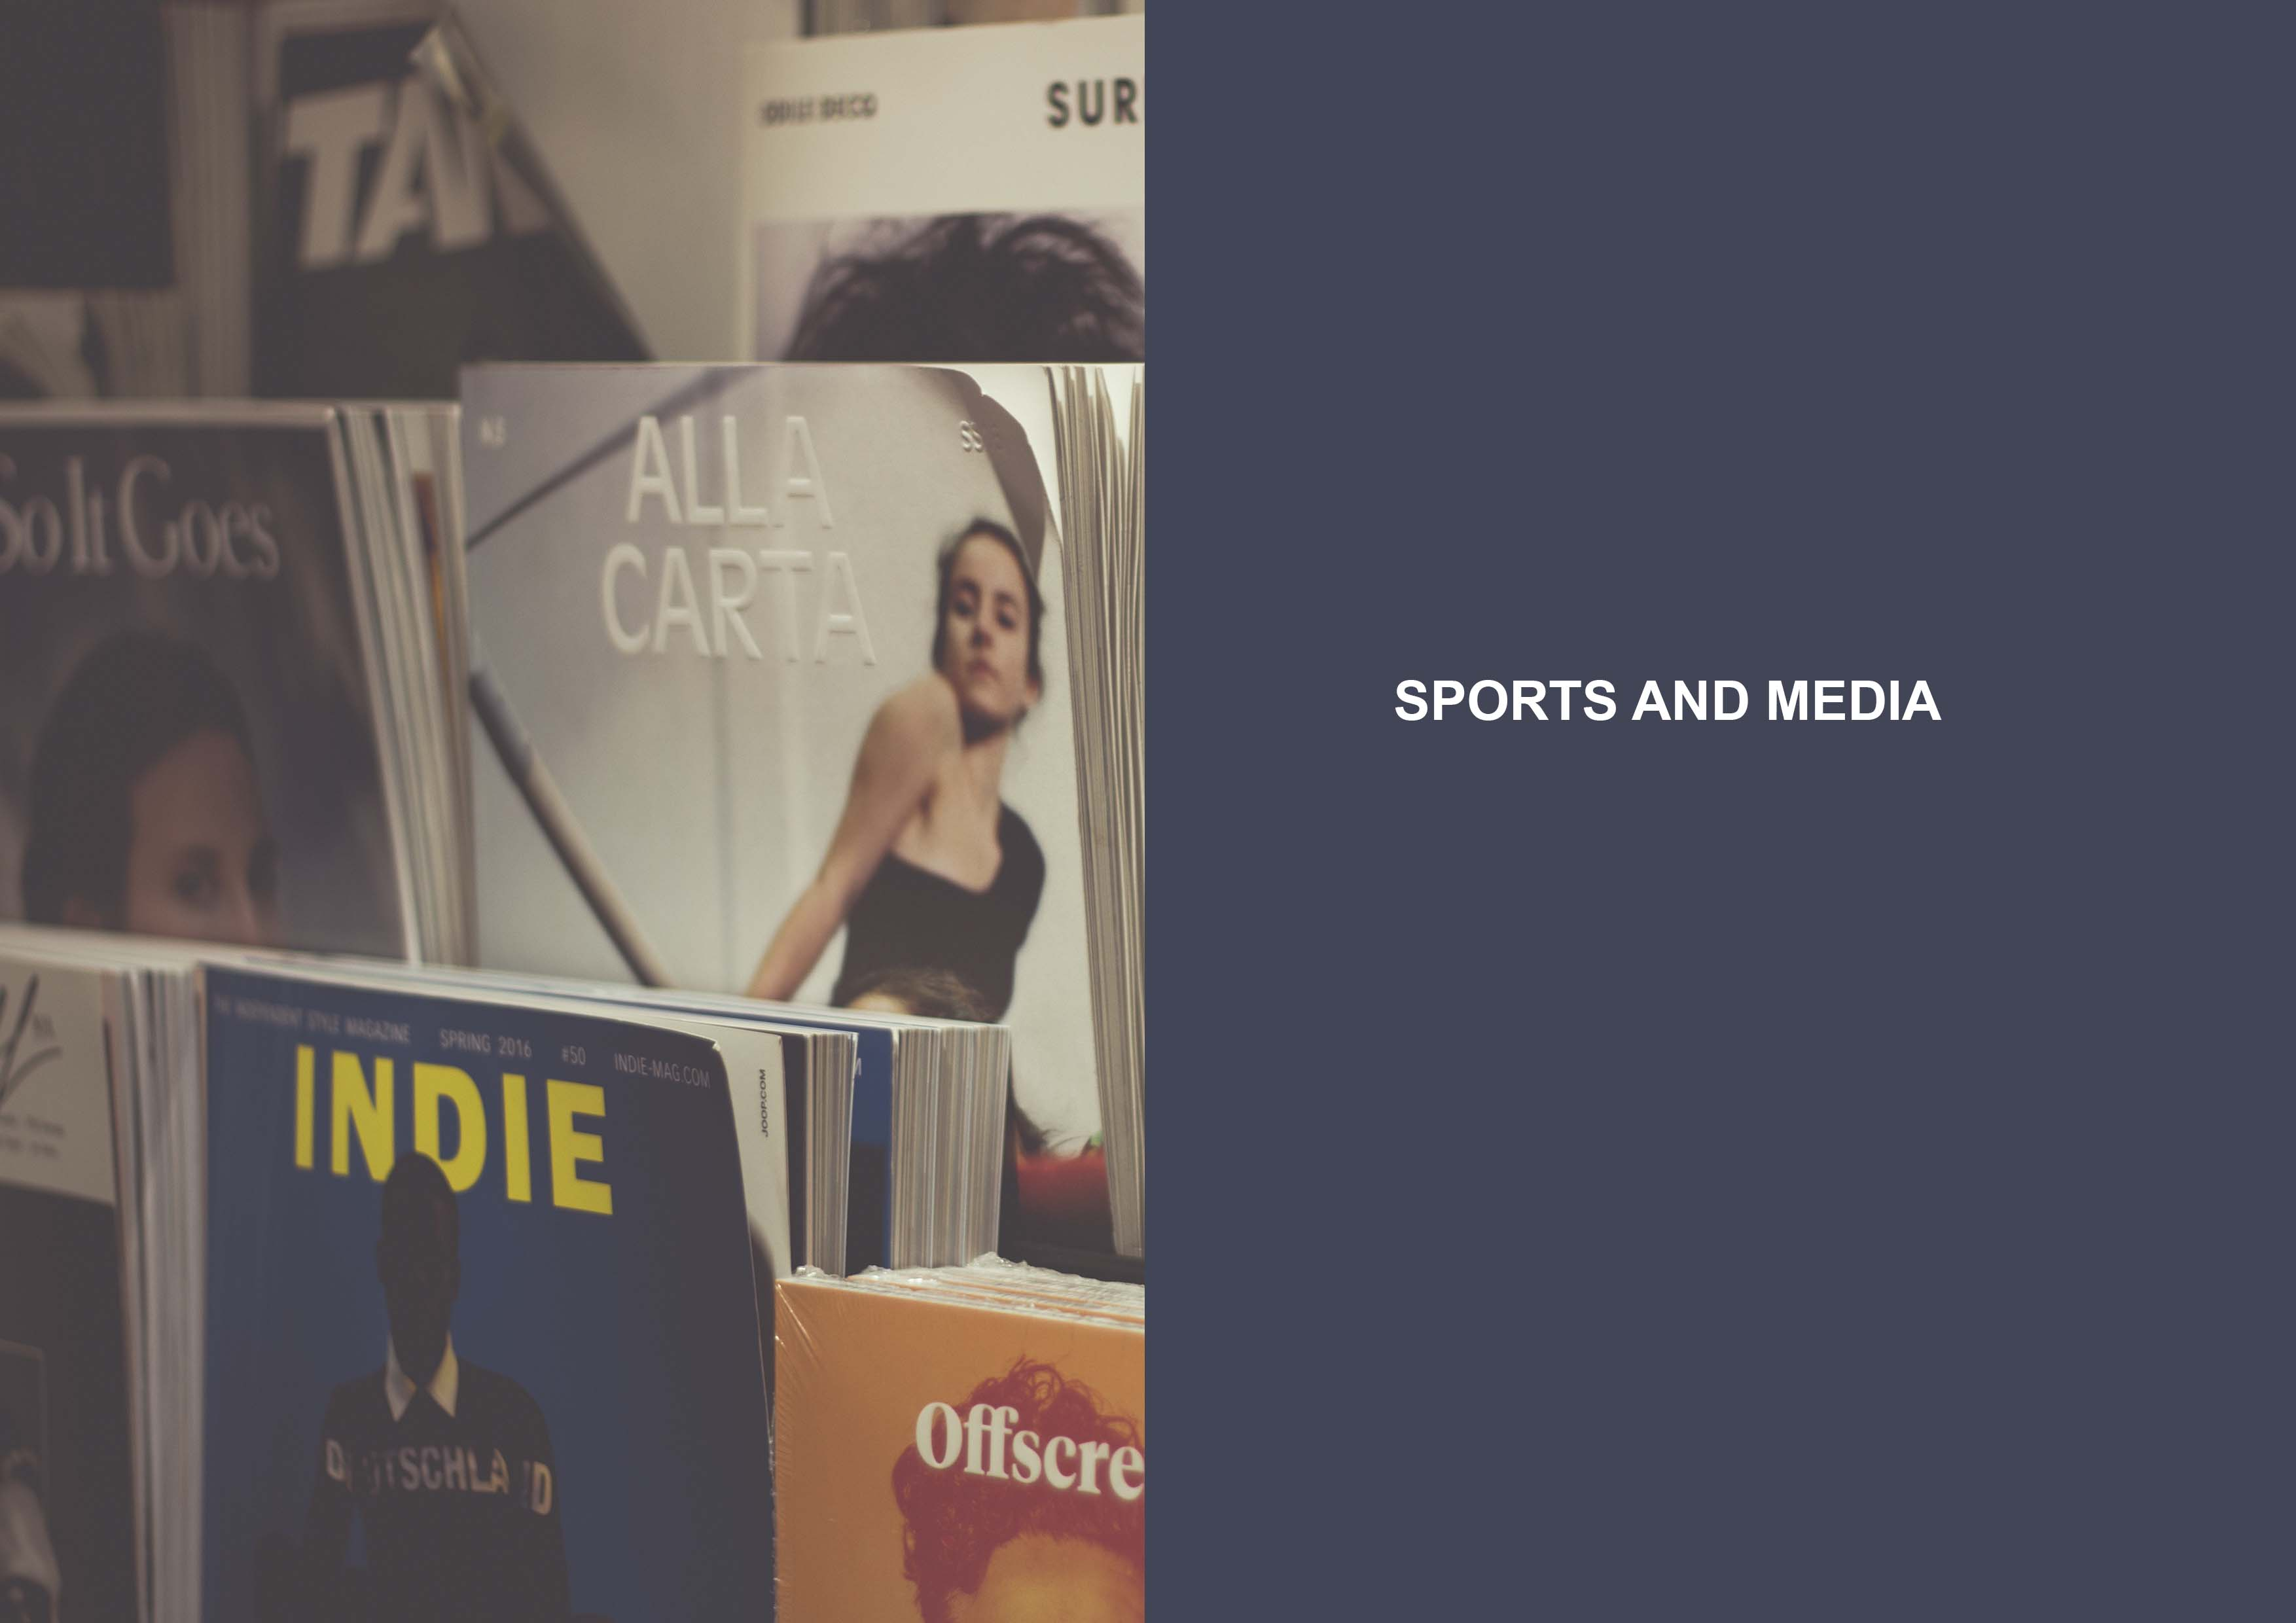 Sports and Media